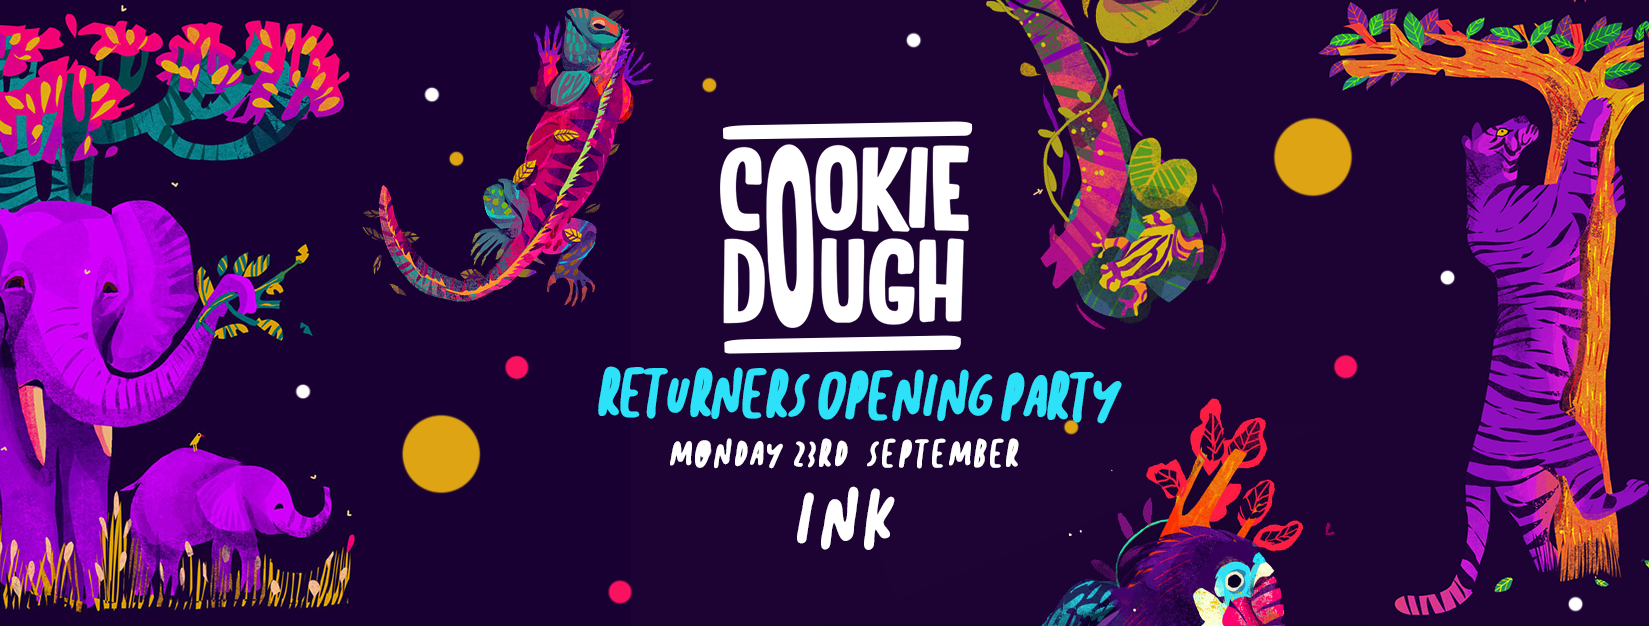 Cookie Dough – Returners Opening Party [Last 300 Tickets]